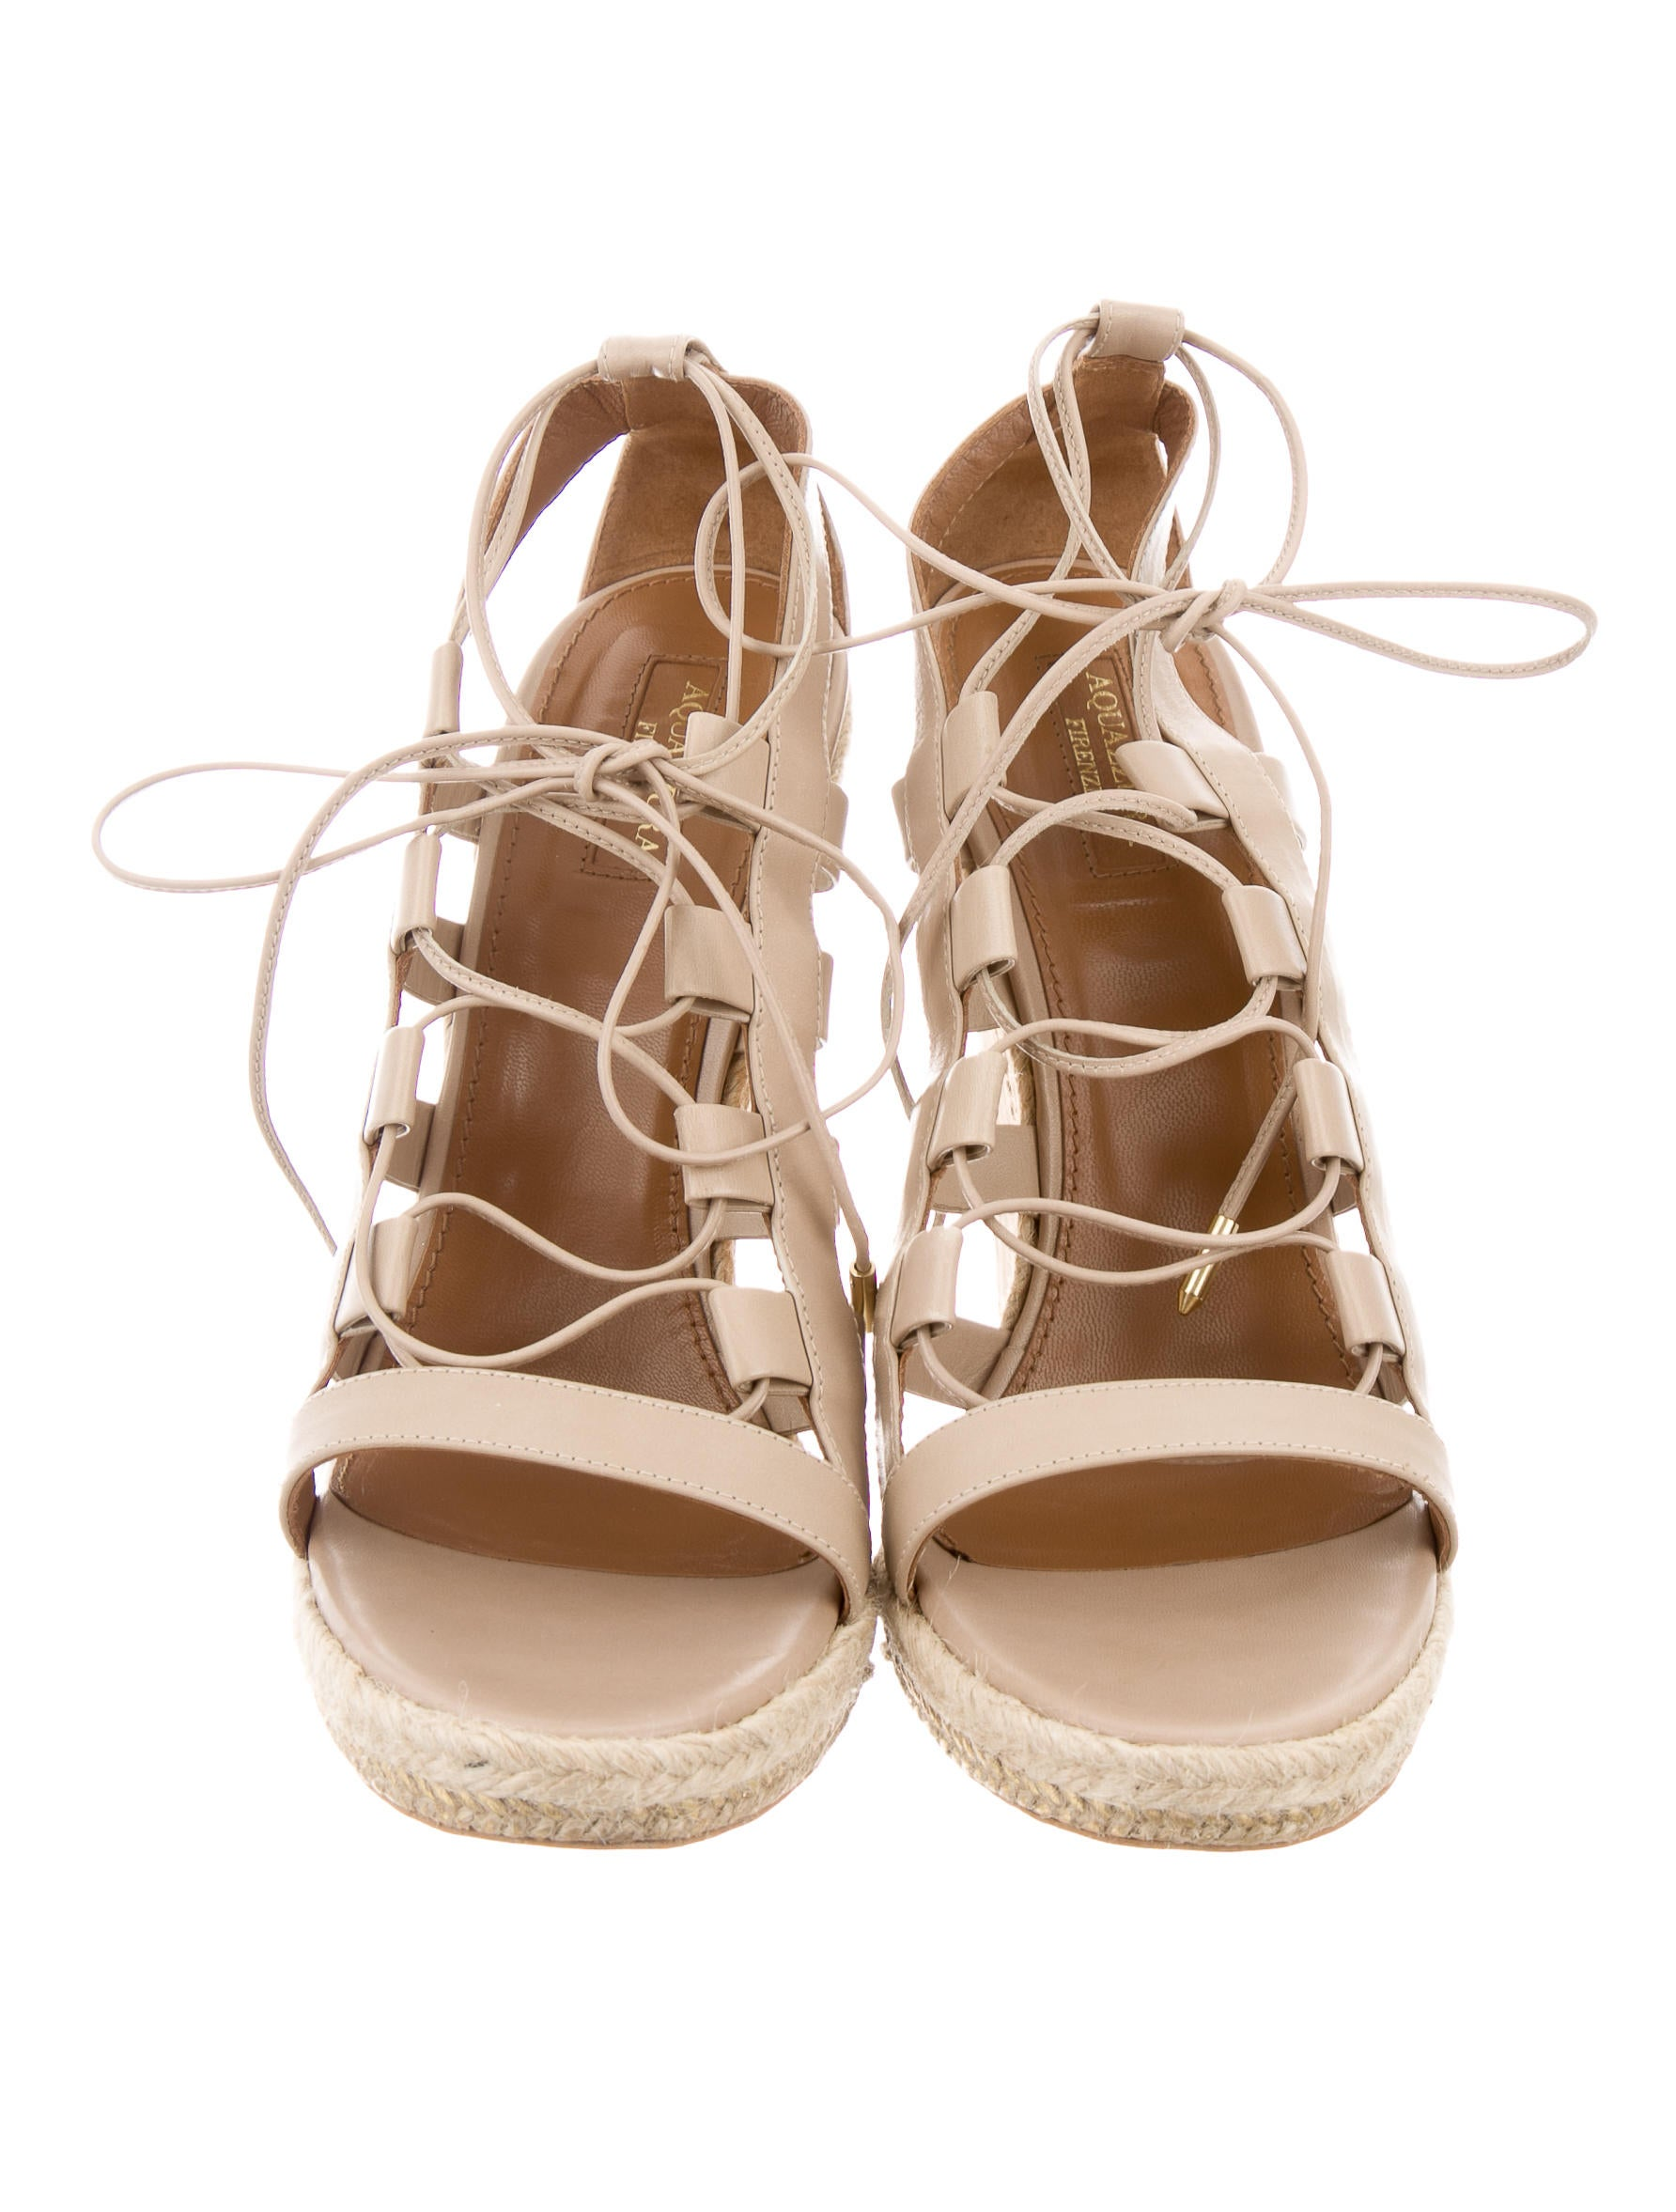 Aquazzura Amazon Lace-Up Wedge Sandals - Shoes - AQZ20889 ...